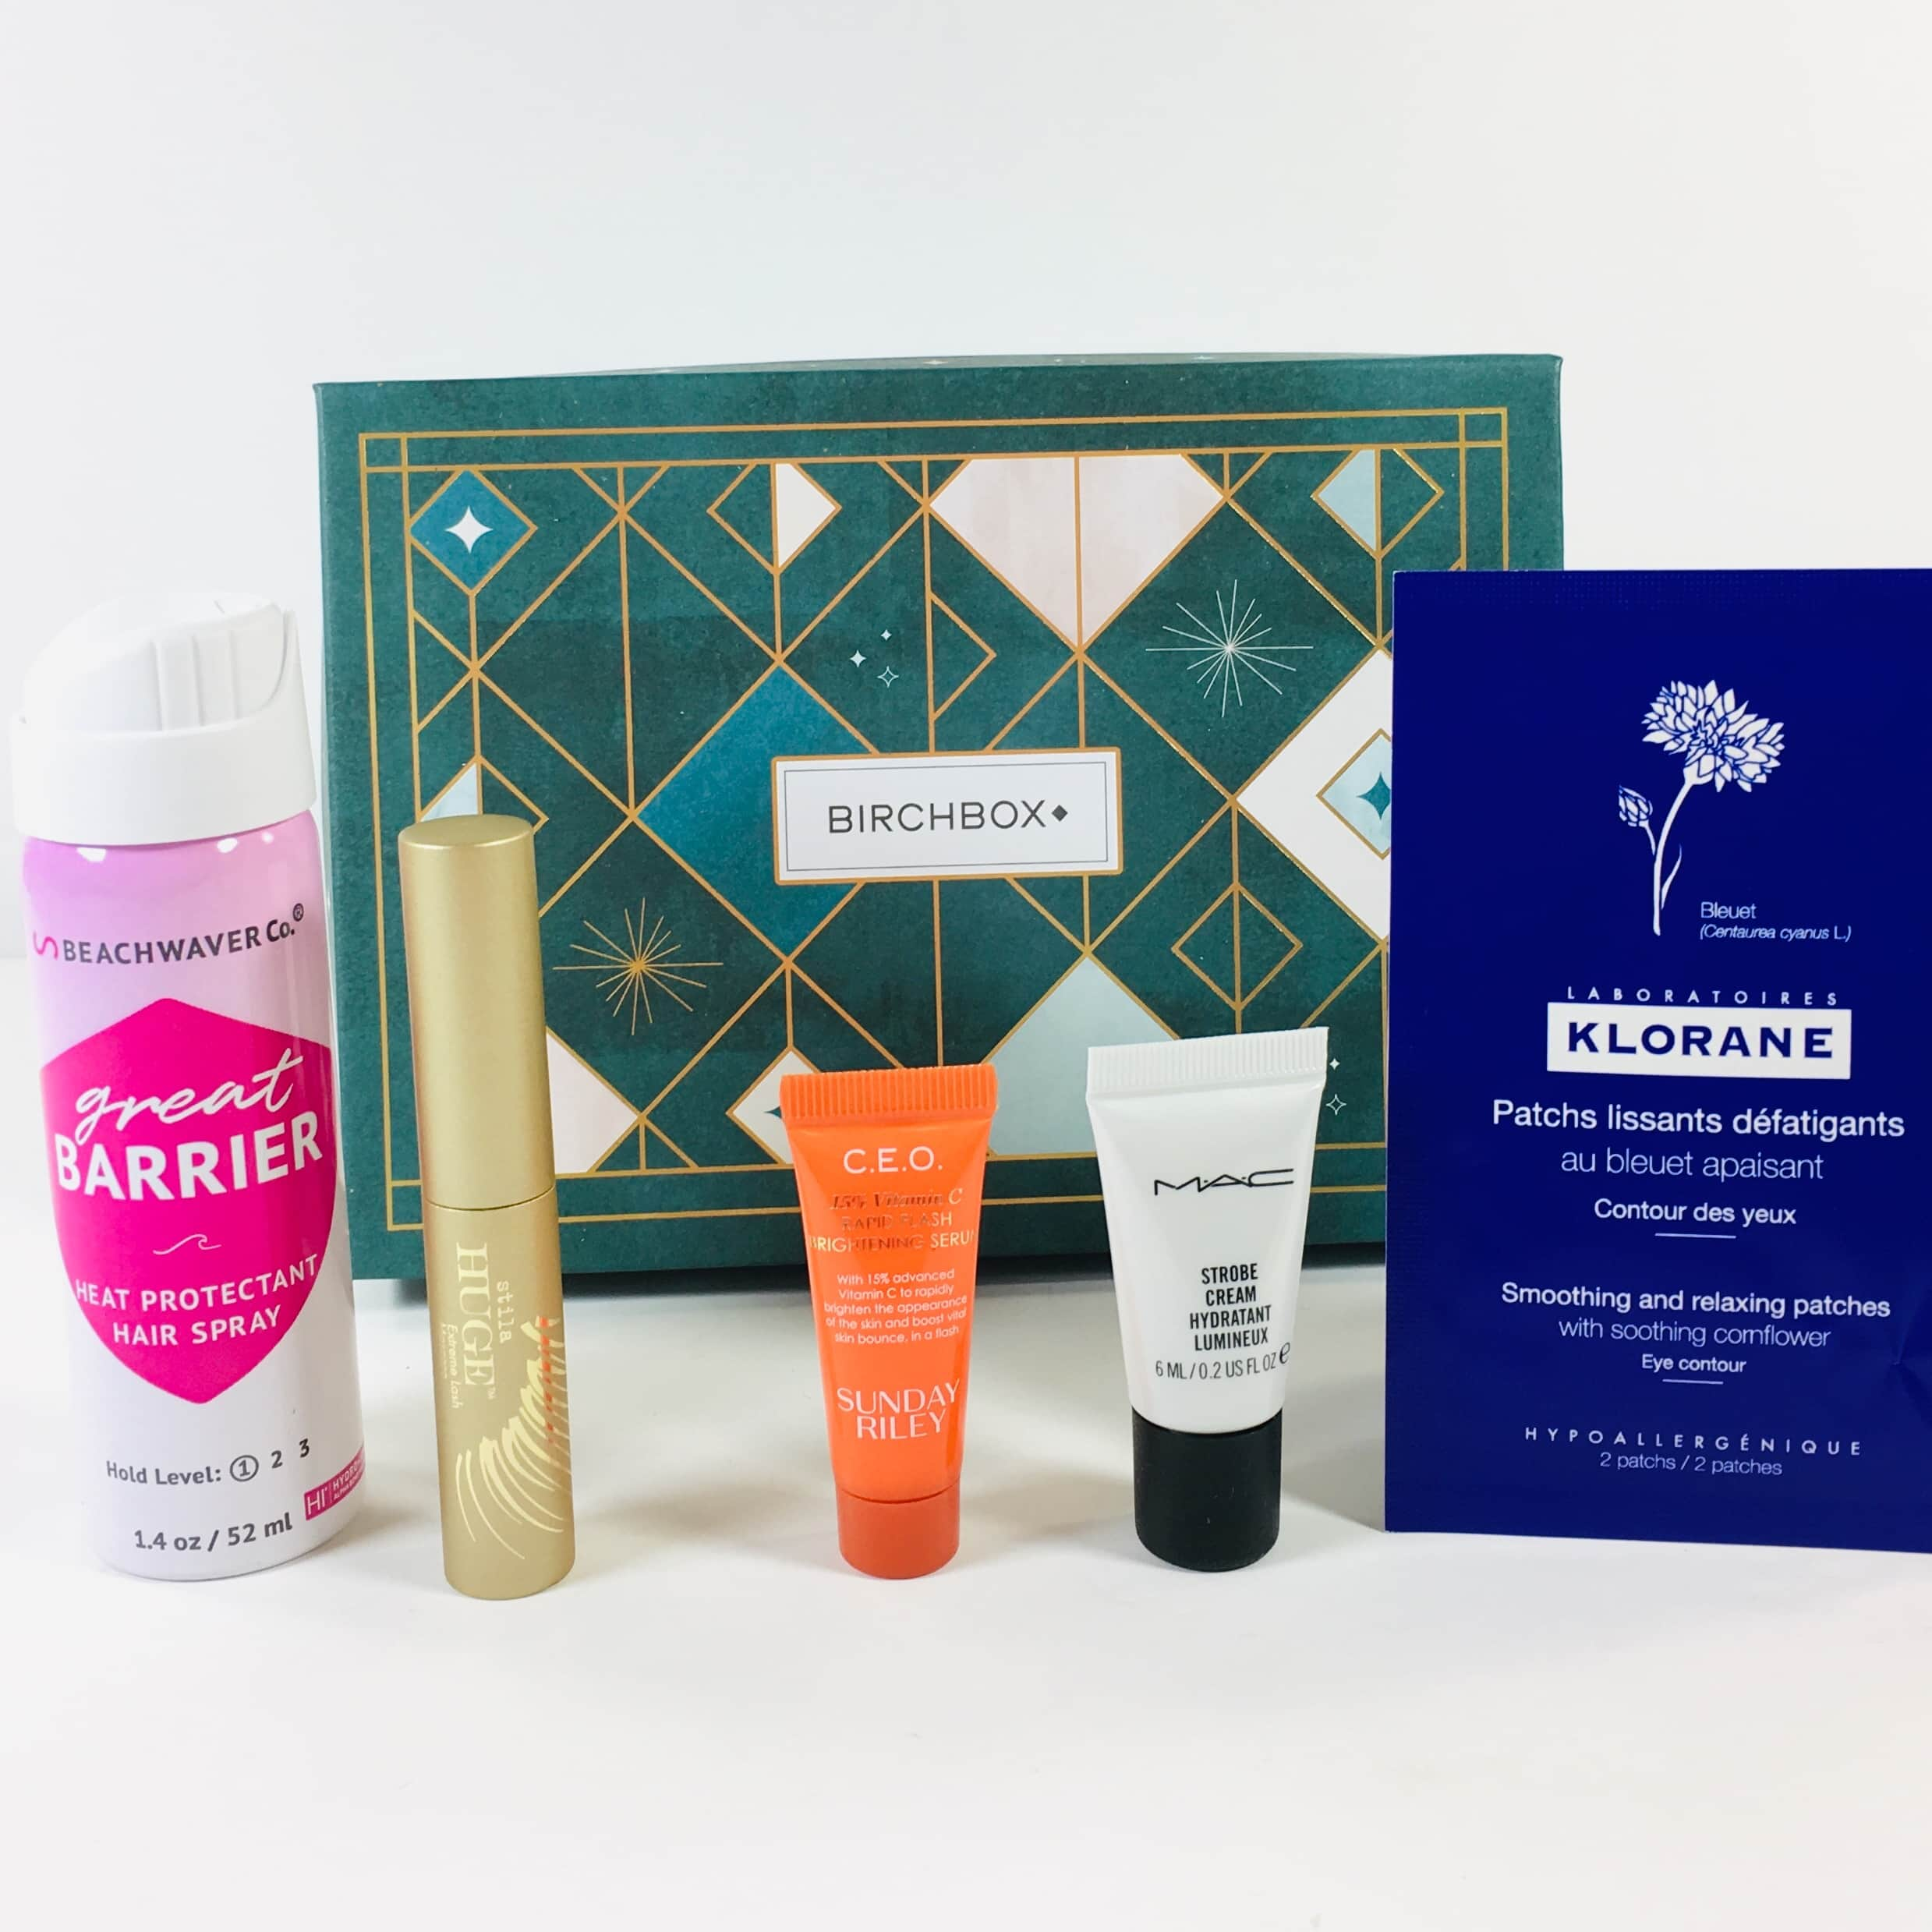 Birchbox December 2018 Curated Box Review + Coupon!